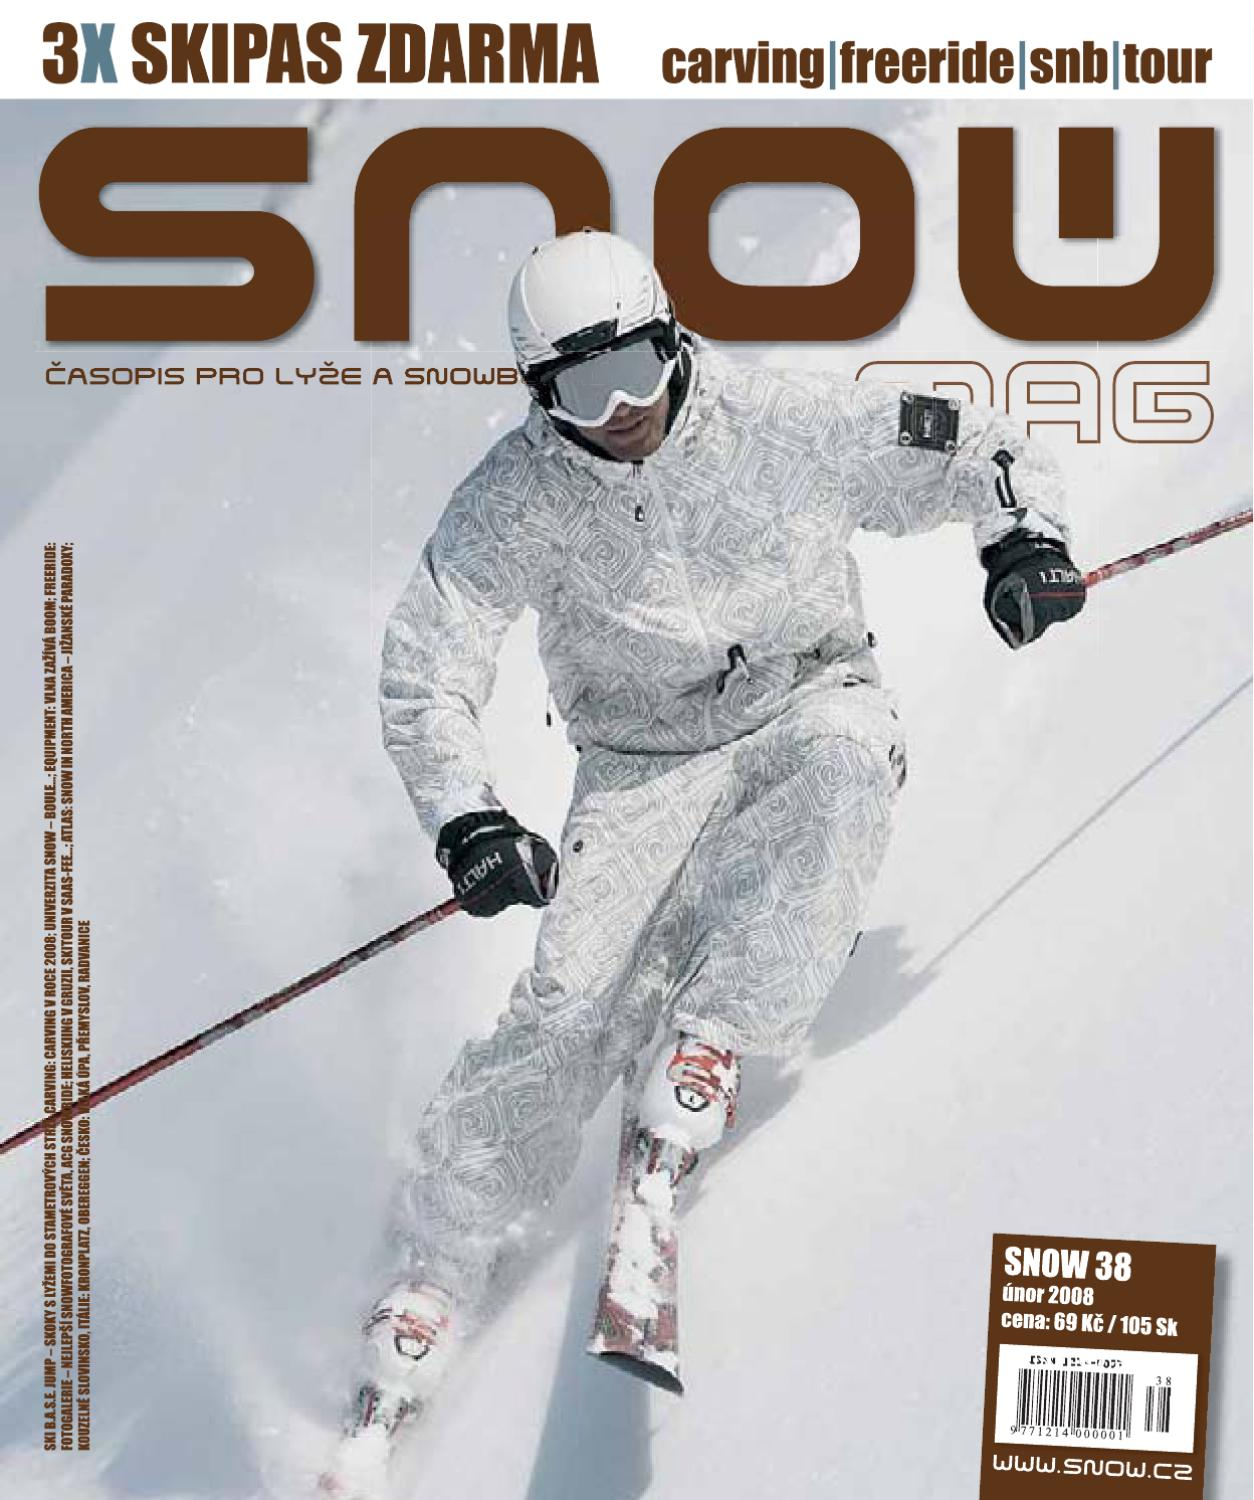 b5d229f59fb SNOW 38 - únor 2008 by SNOW CZ s.r.o. - issuu